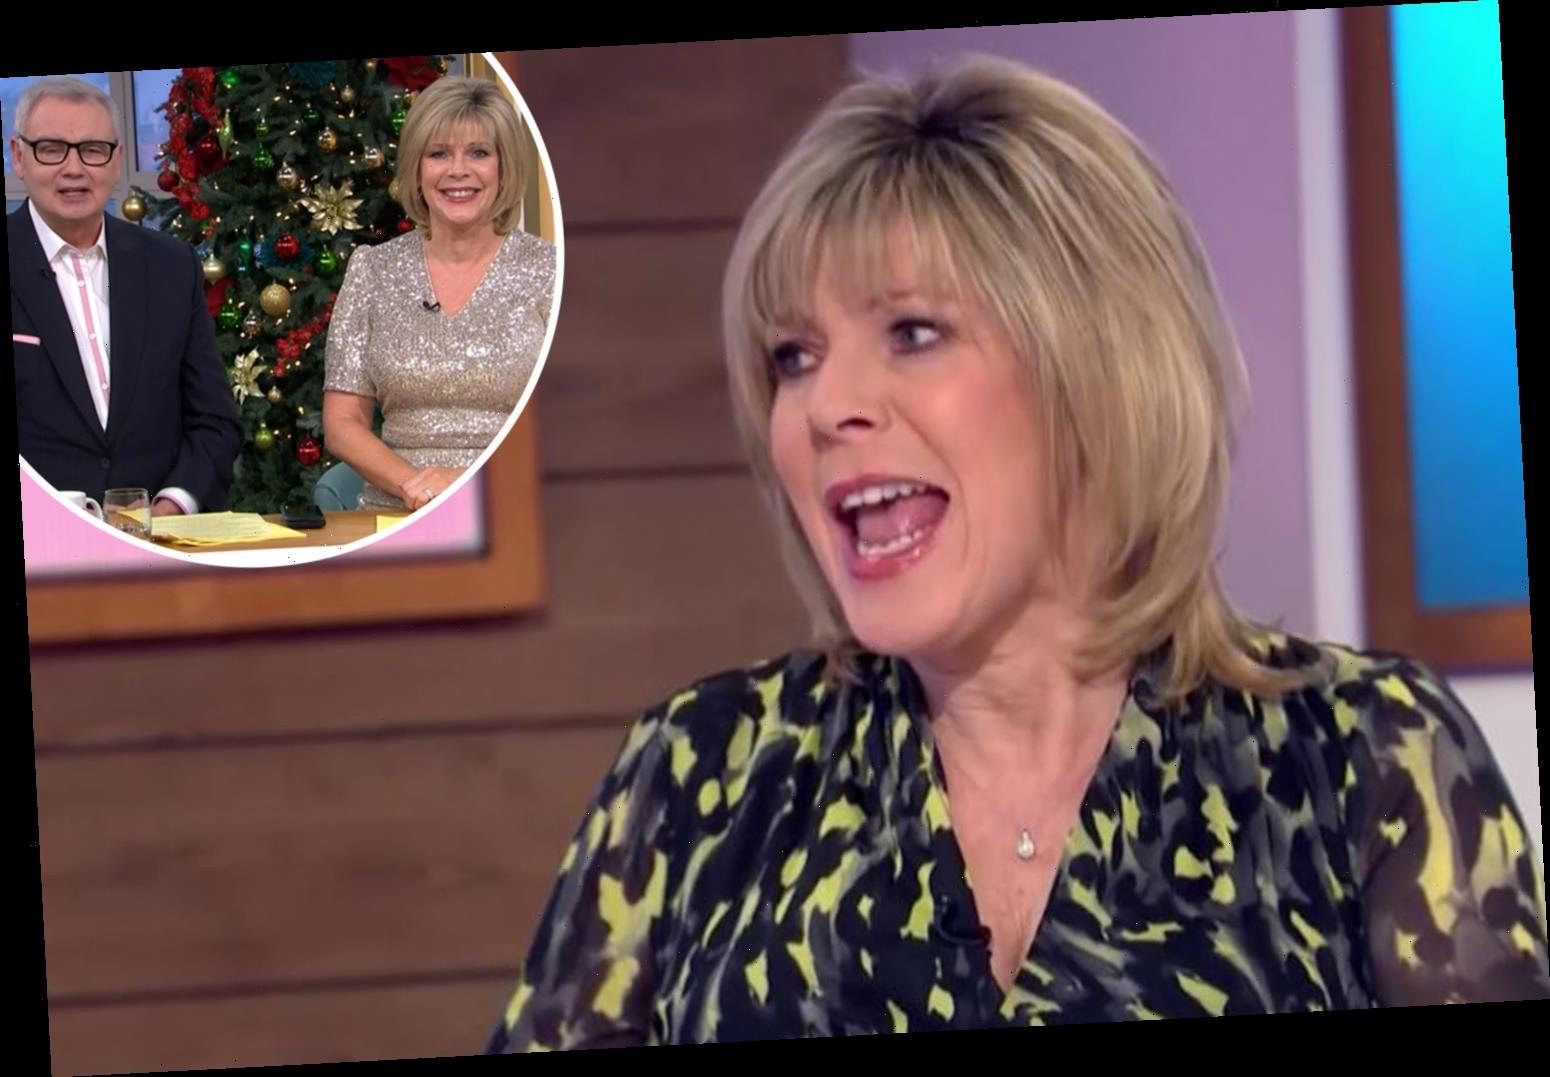 Ruth Langsford makes emotional return to Loose Women after This Morning axe saying 'people thought I'd left'